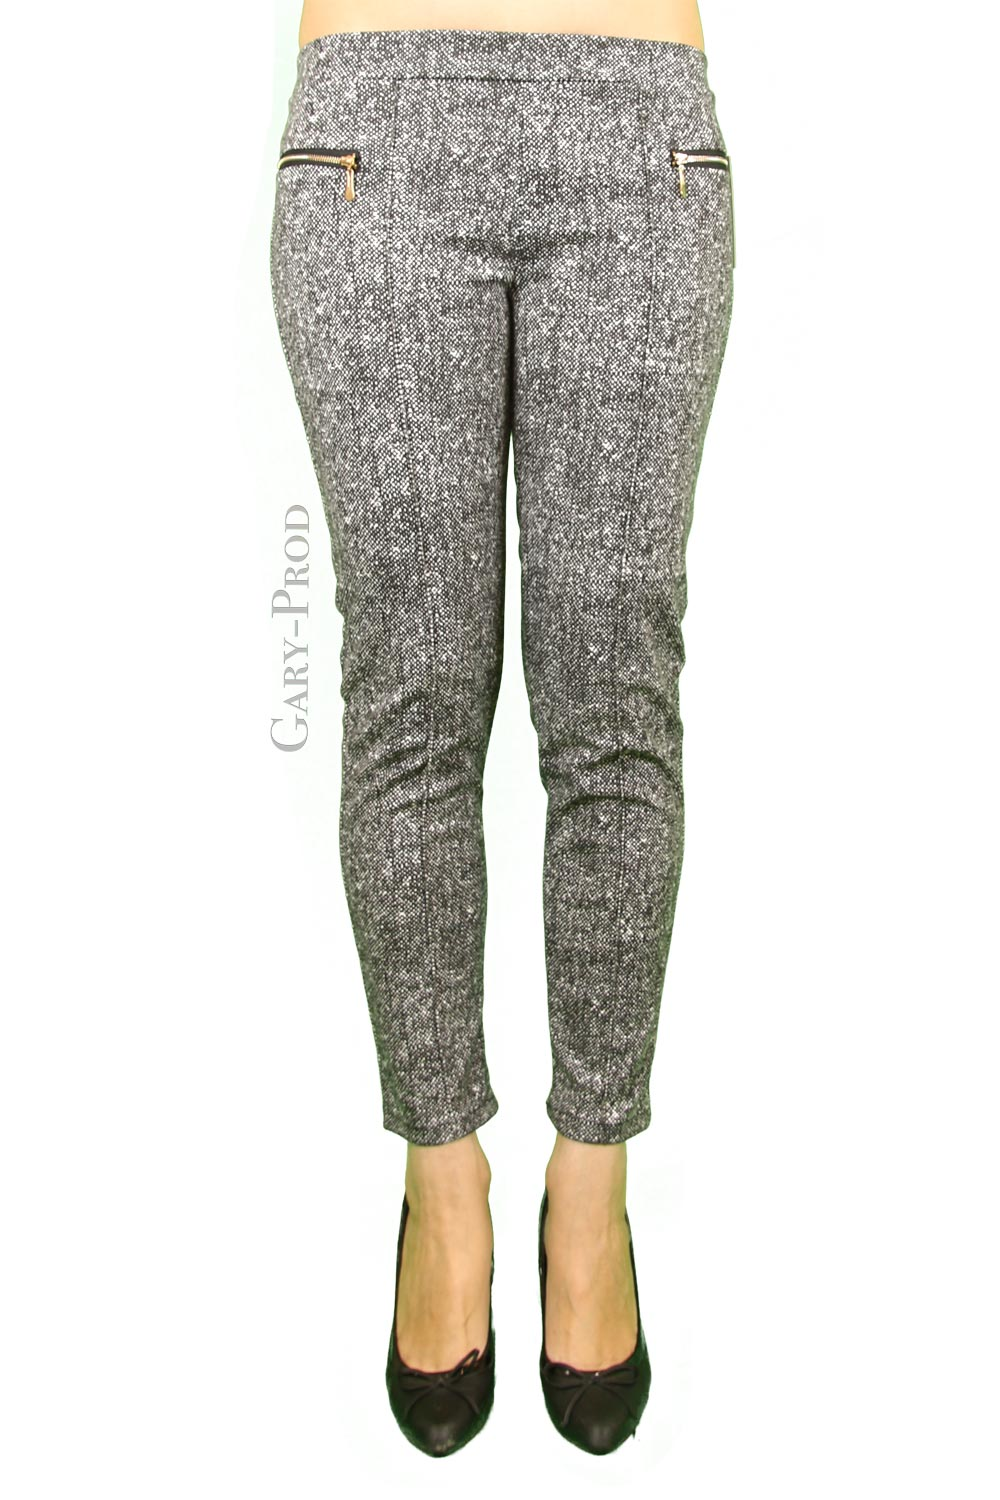 Pantalon gris chiné moda ' MADE IN ITALY'